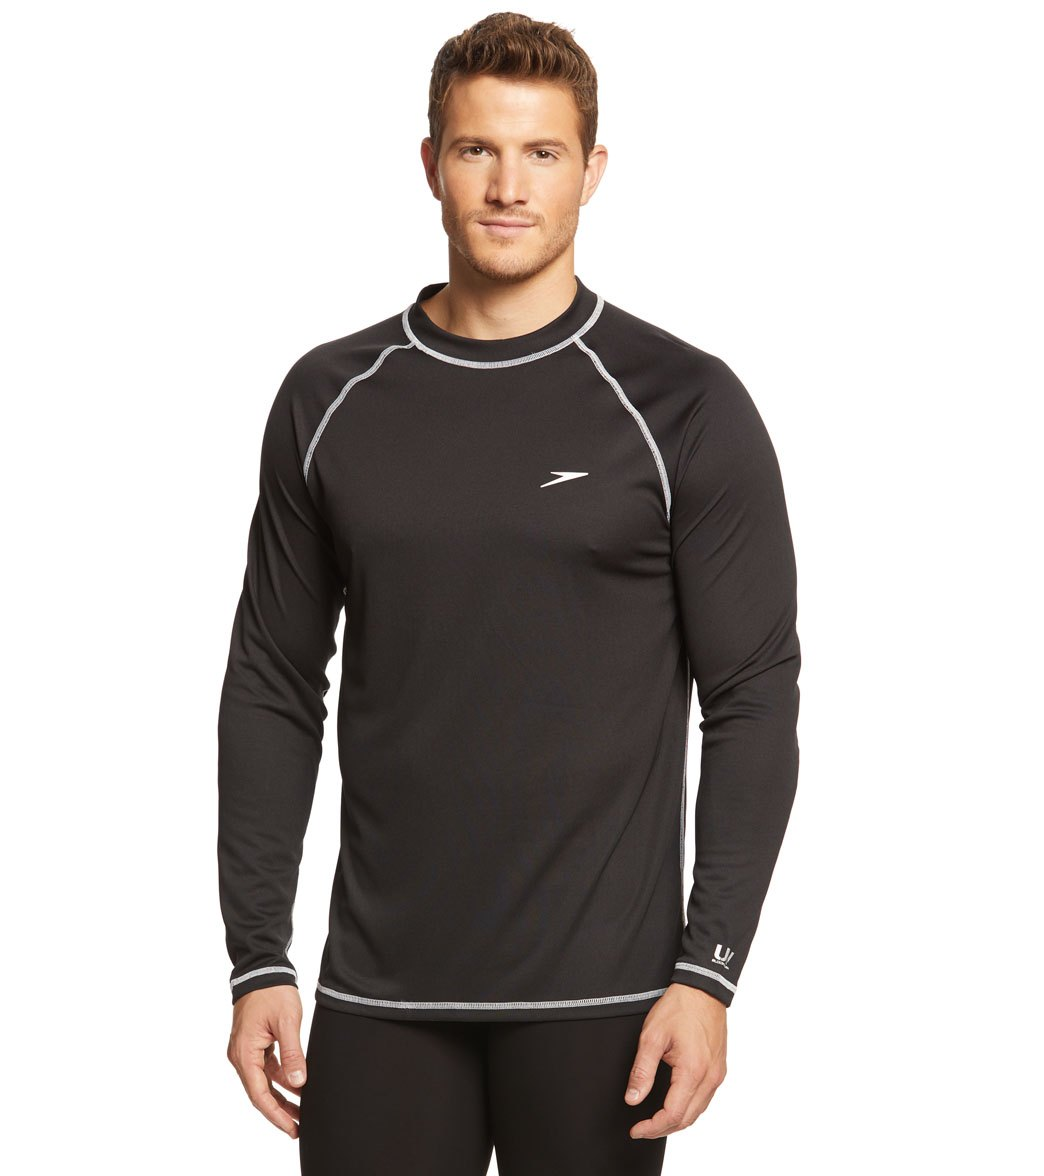 speedo men 39 s easy long sleeve swim shirt at